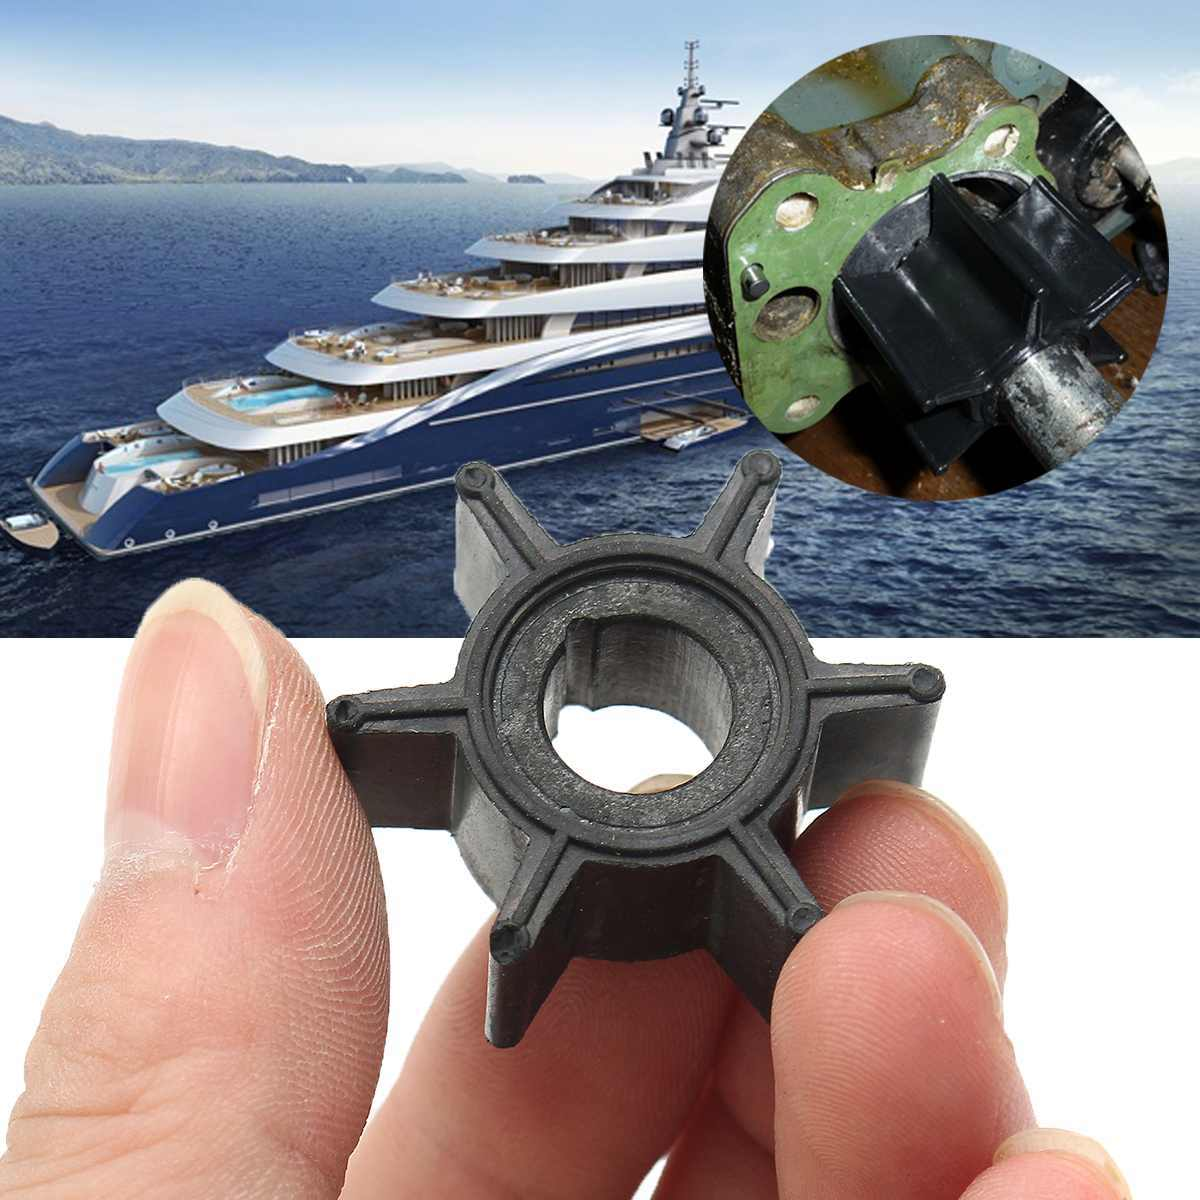 Water Pump Impeller For Tohatsu/Mercury/Sierra 2/2.5/3.5/4/5/6HP Outboard Motor Black Rubber 6 Blades Boat Parts & Accessories